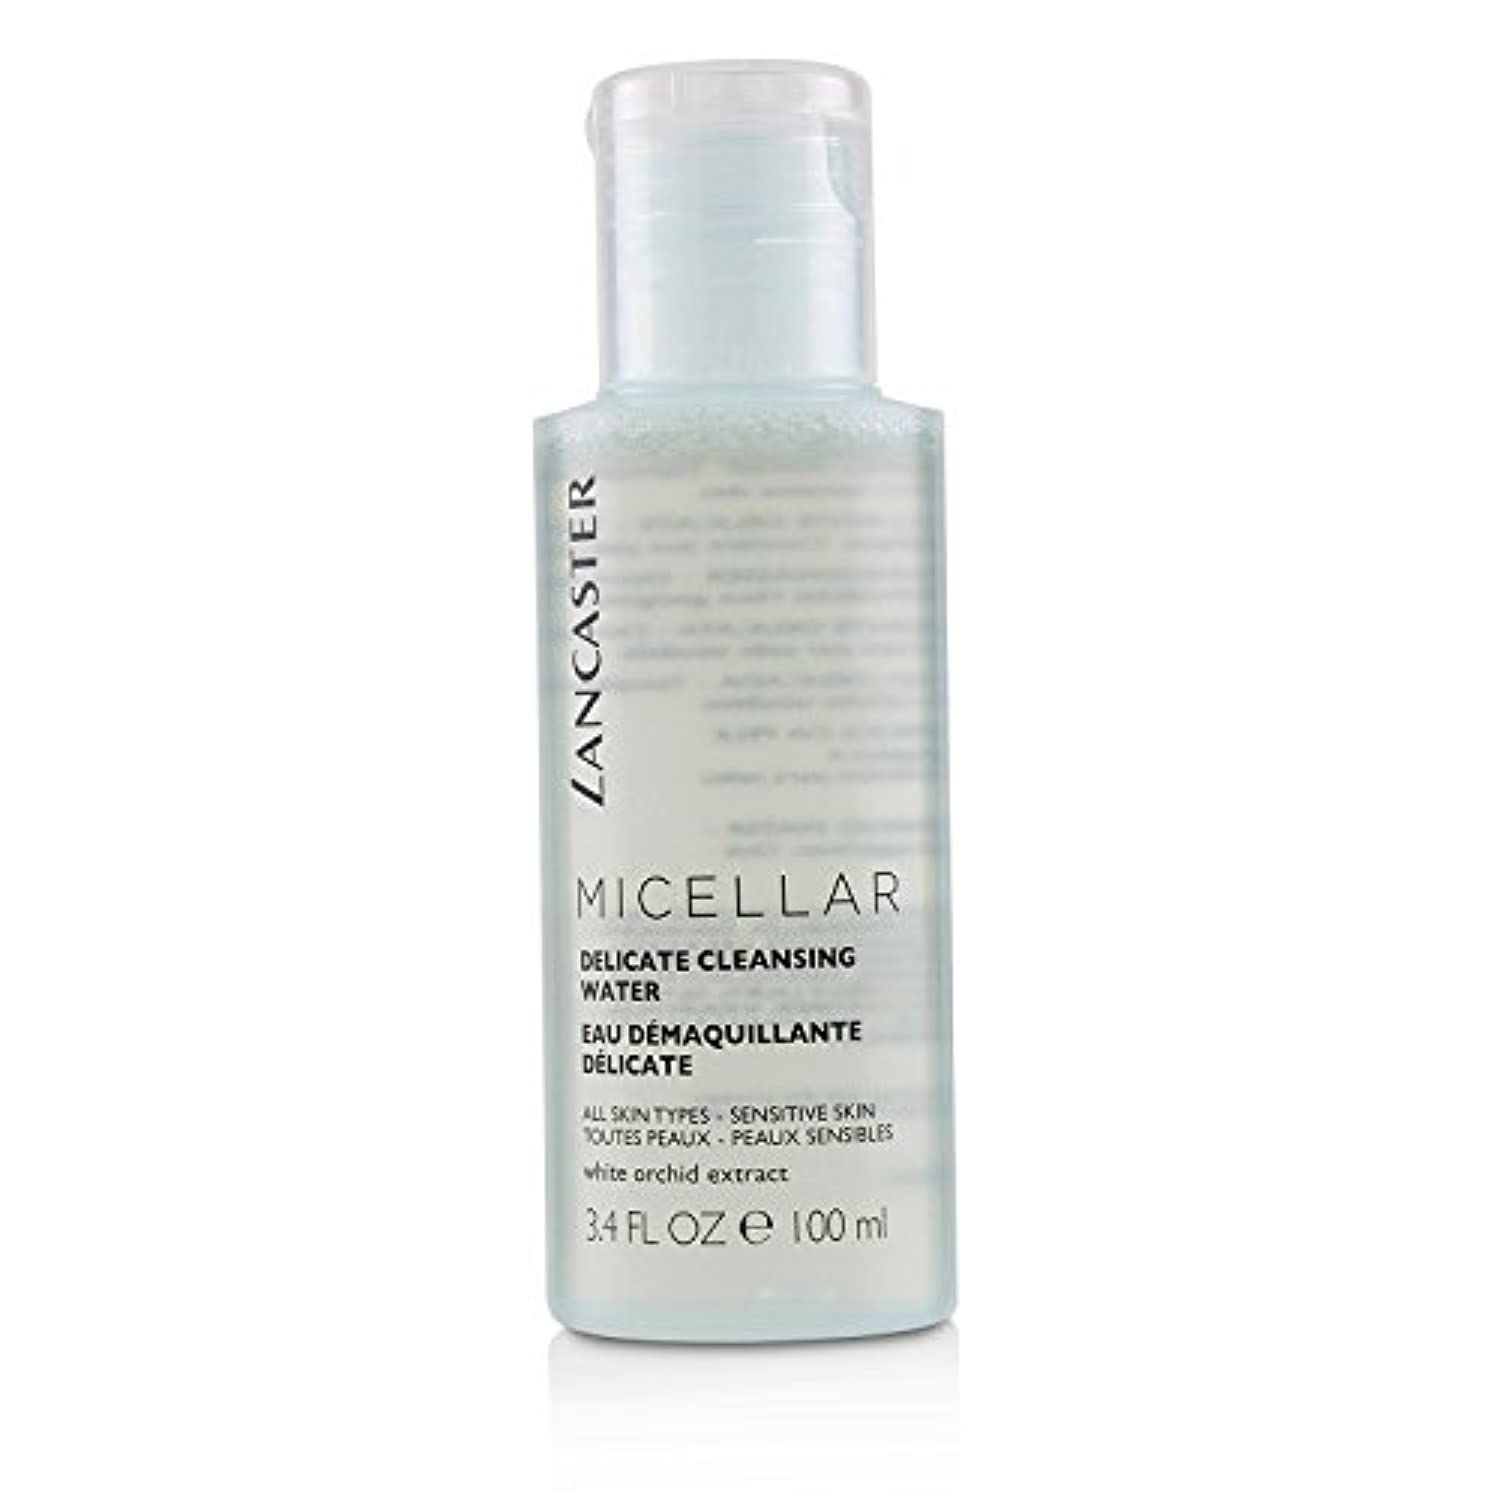 治す開示する光沢のあるランカスター Micellar Delicate Cleansing Water - All Skin Types, Including Sensitive Skin 100ml/3.4oz並行輸入品